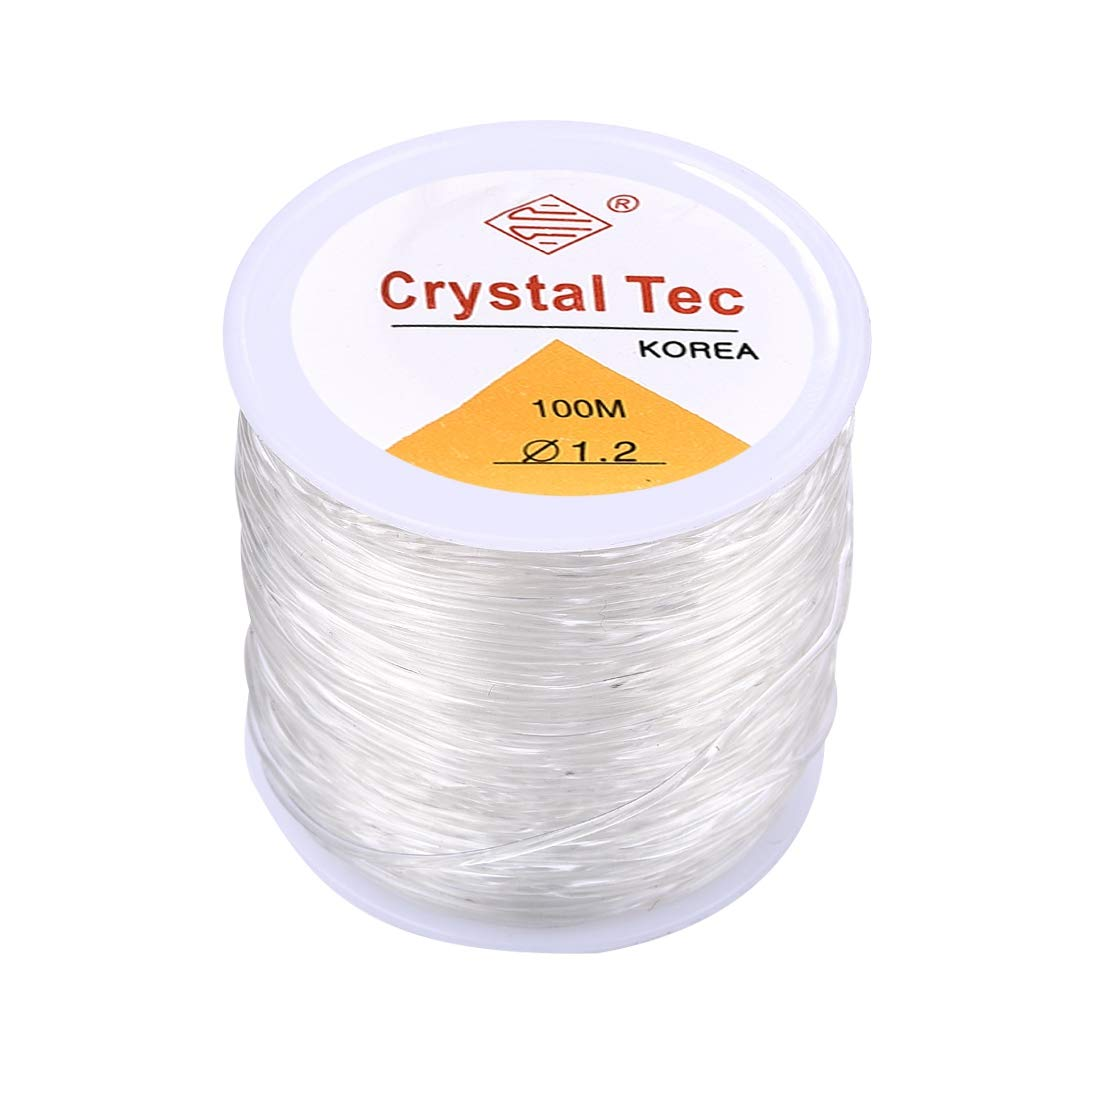 1 Roll 100M Elastic Bracelet String Cord Clear Stretch Bead Cord for Jewelry Making and Bracelet Making 0.6mm/×100m White B